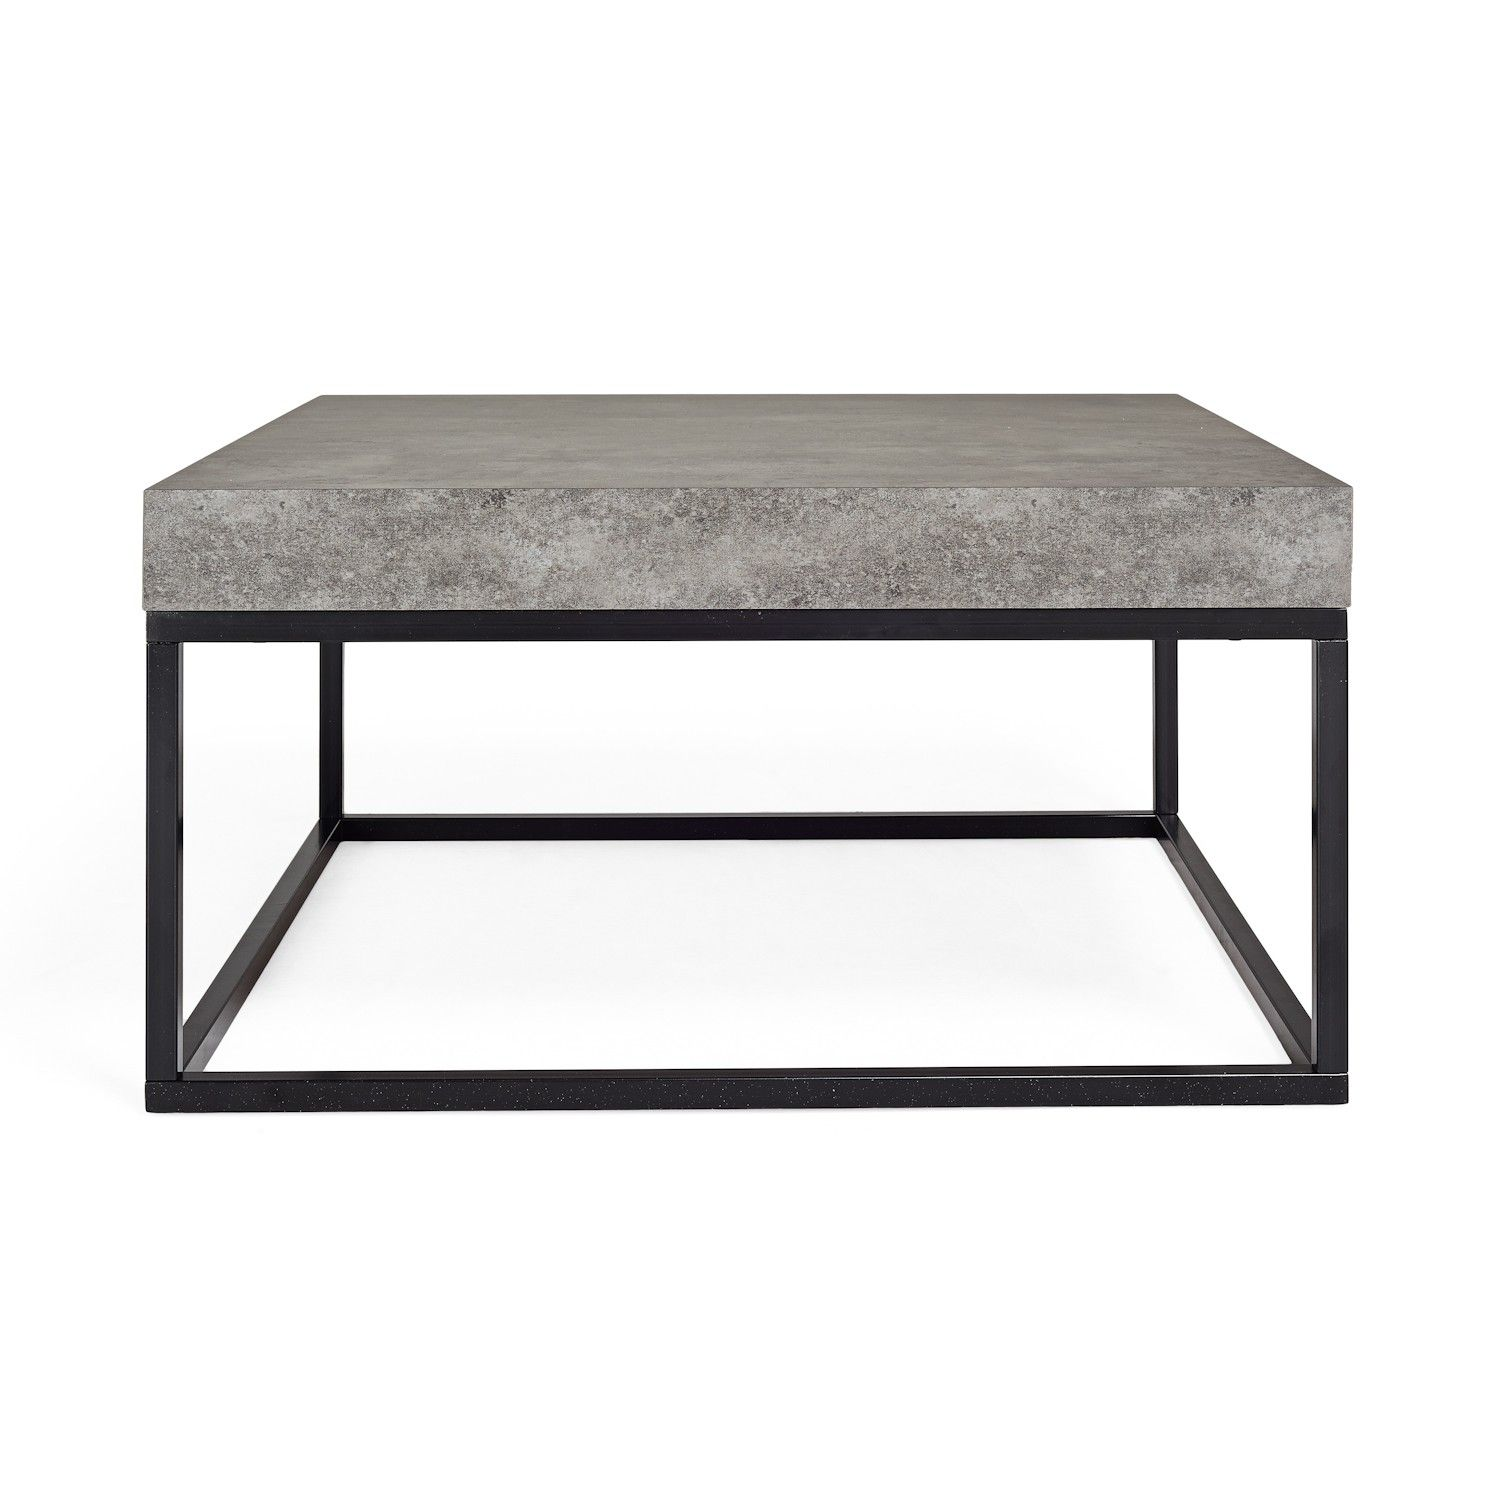 Industrial yet polished the Concrete Coffee Table is made from